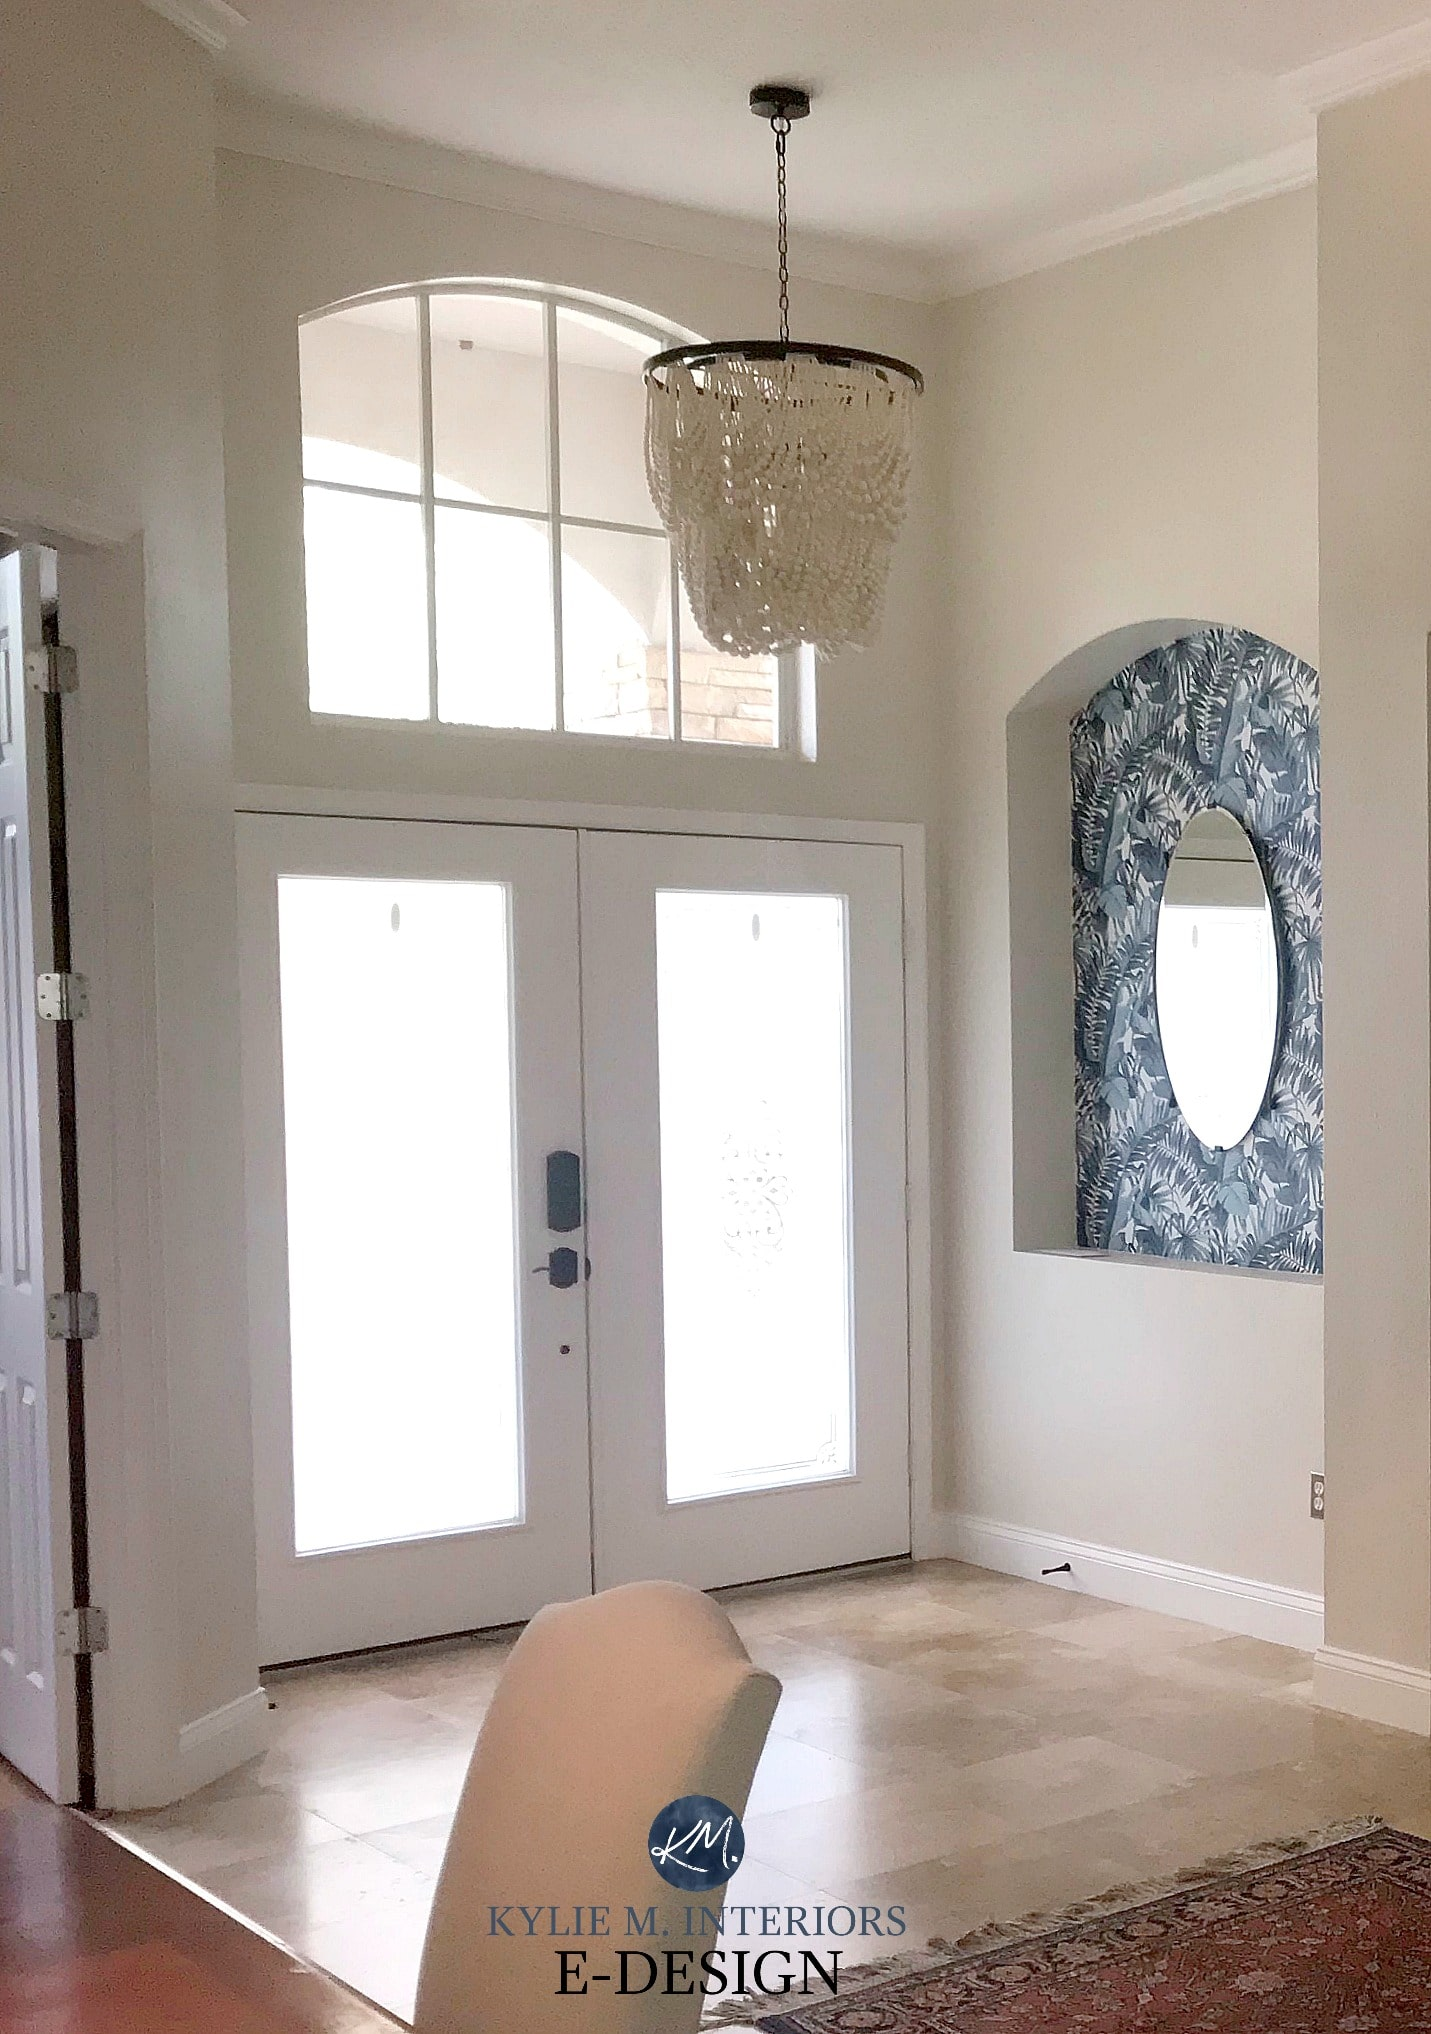 Sherwin Williams Neutral Ground With Travertine Tile